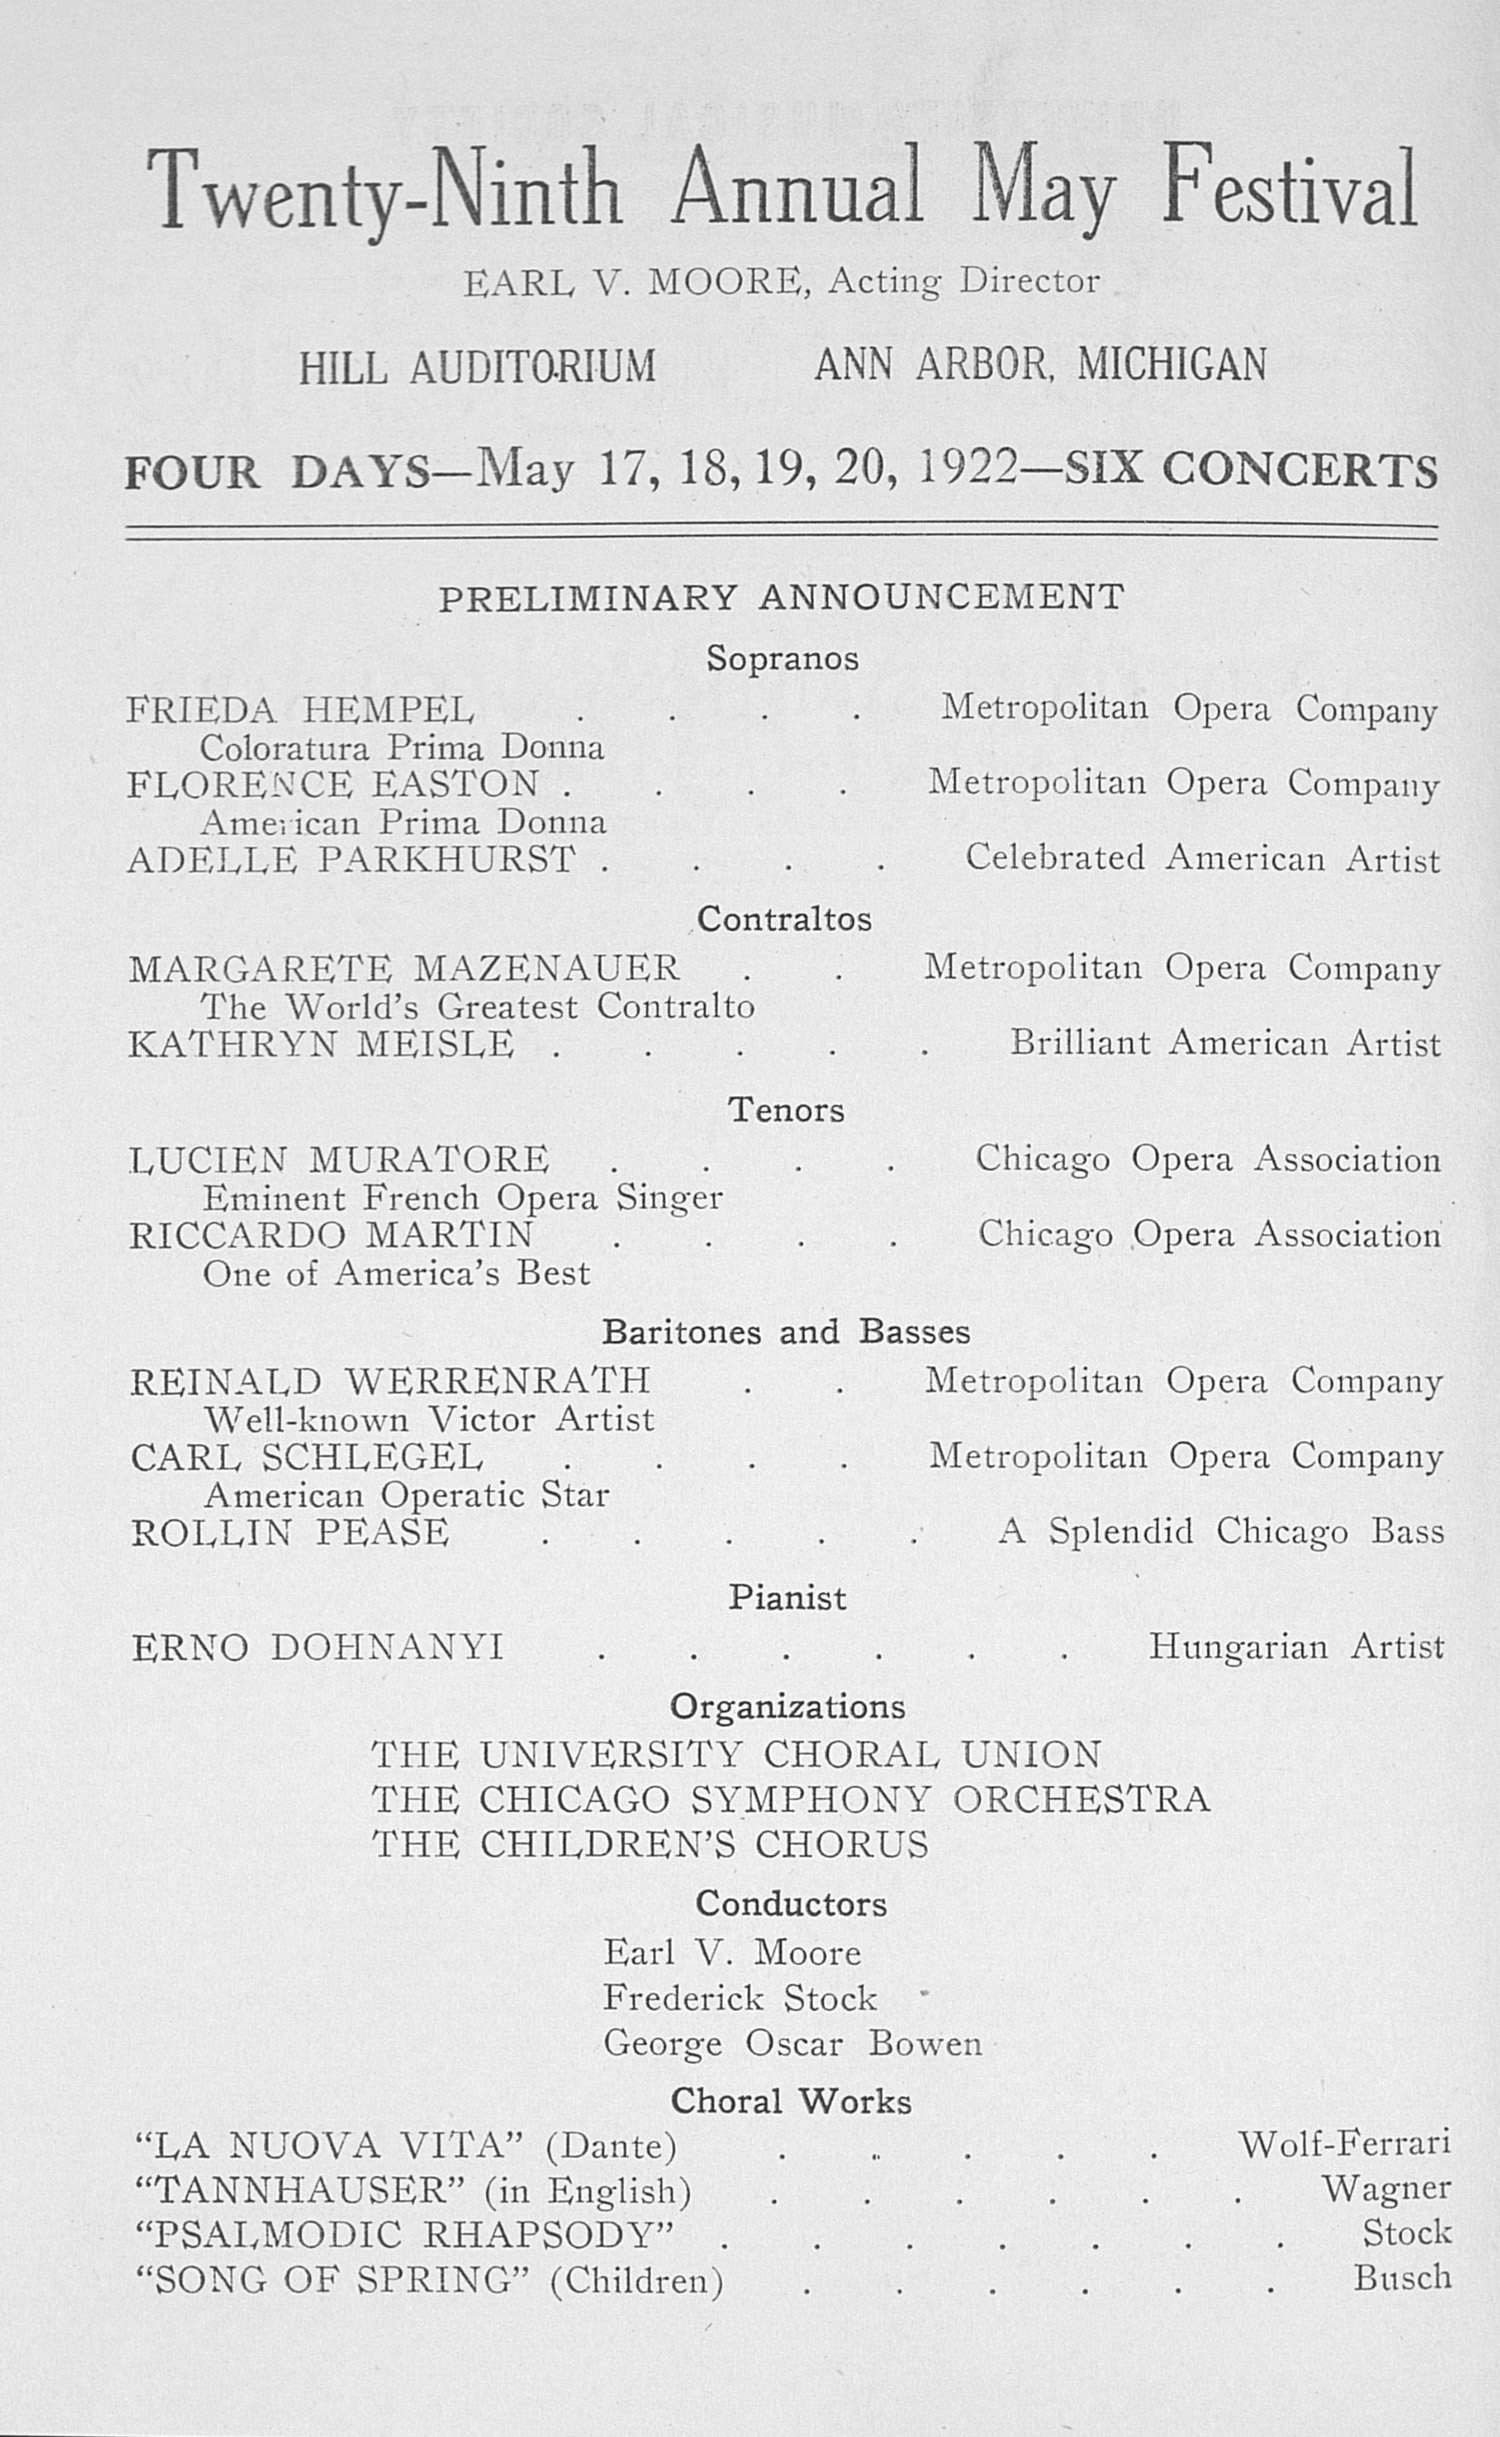 UMS Concert Program, February 20, 1922: The Detroit Symphony Orchestra --  image